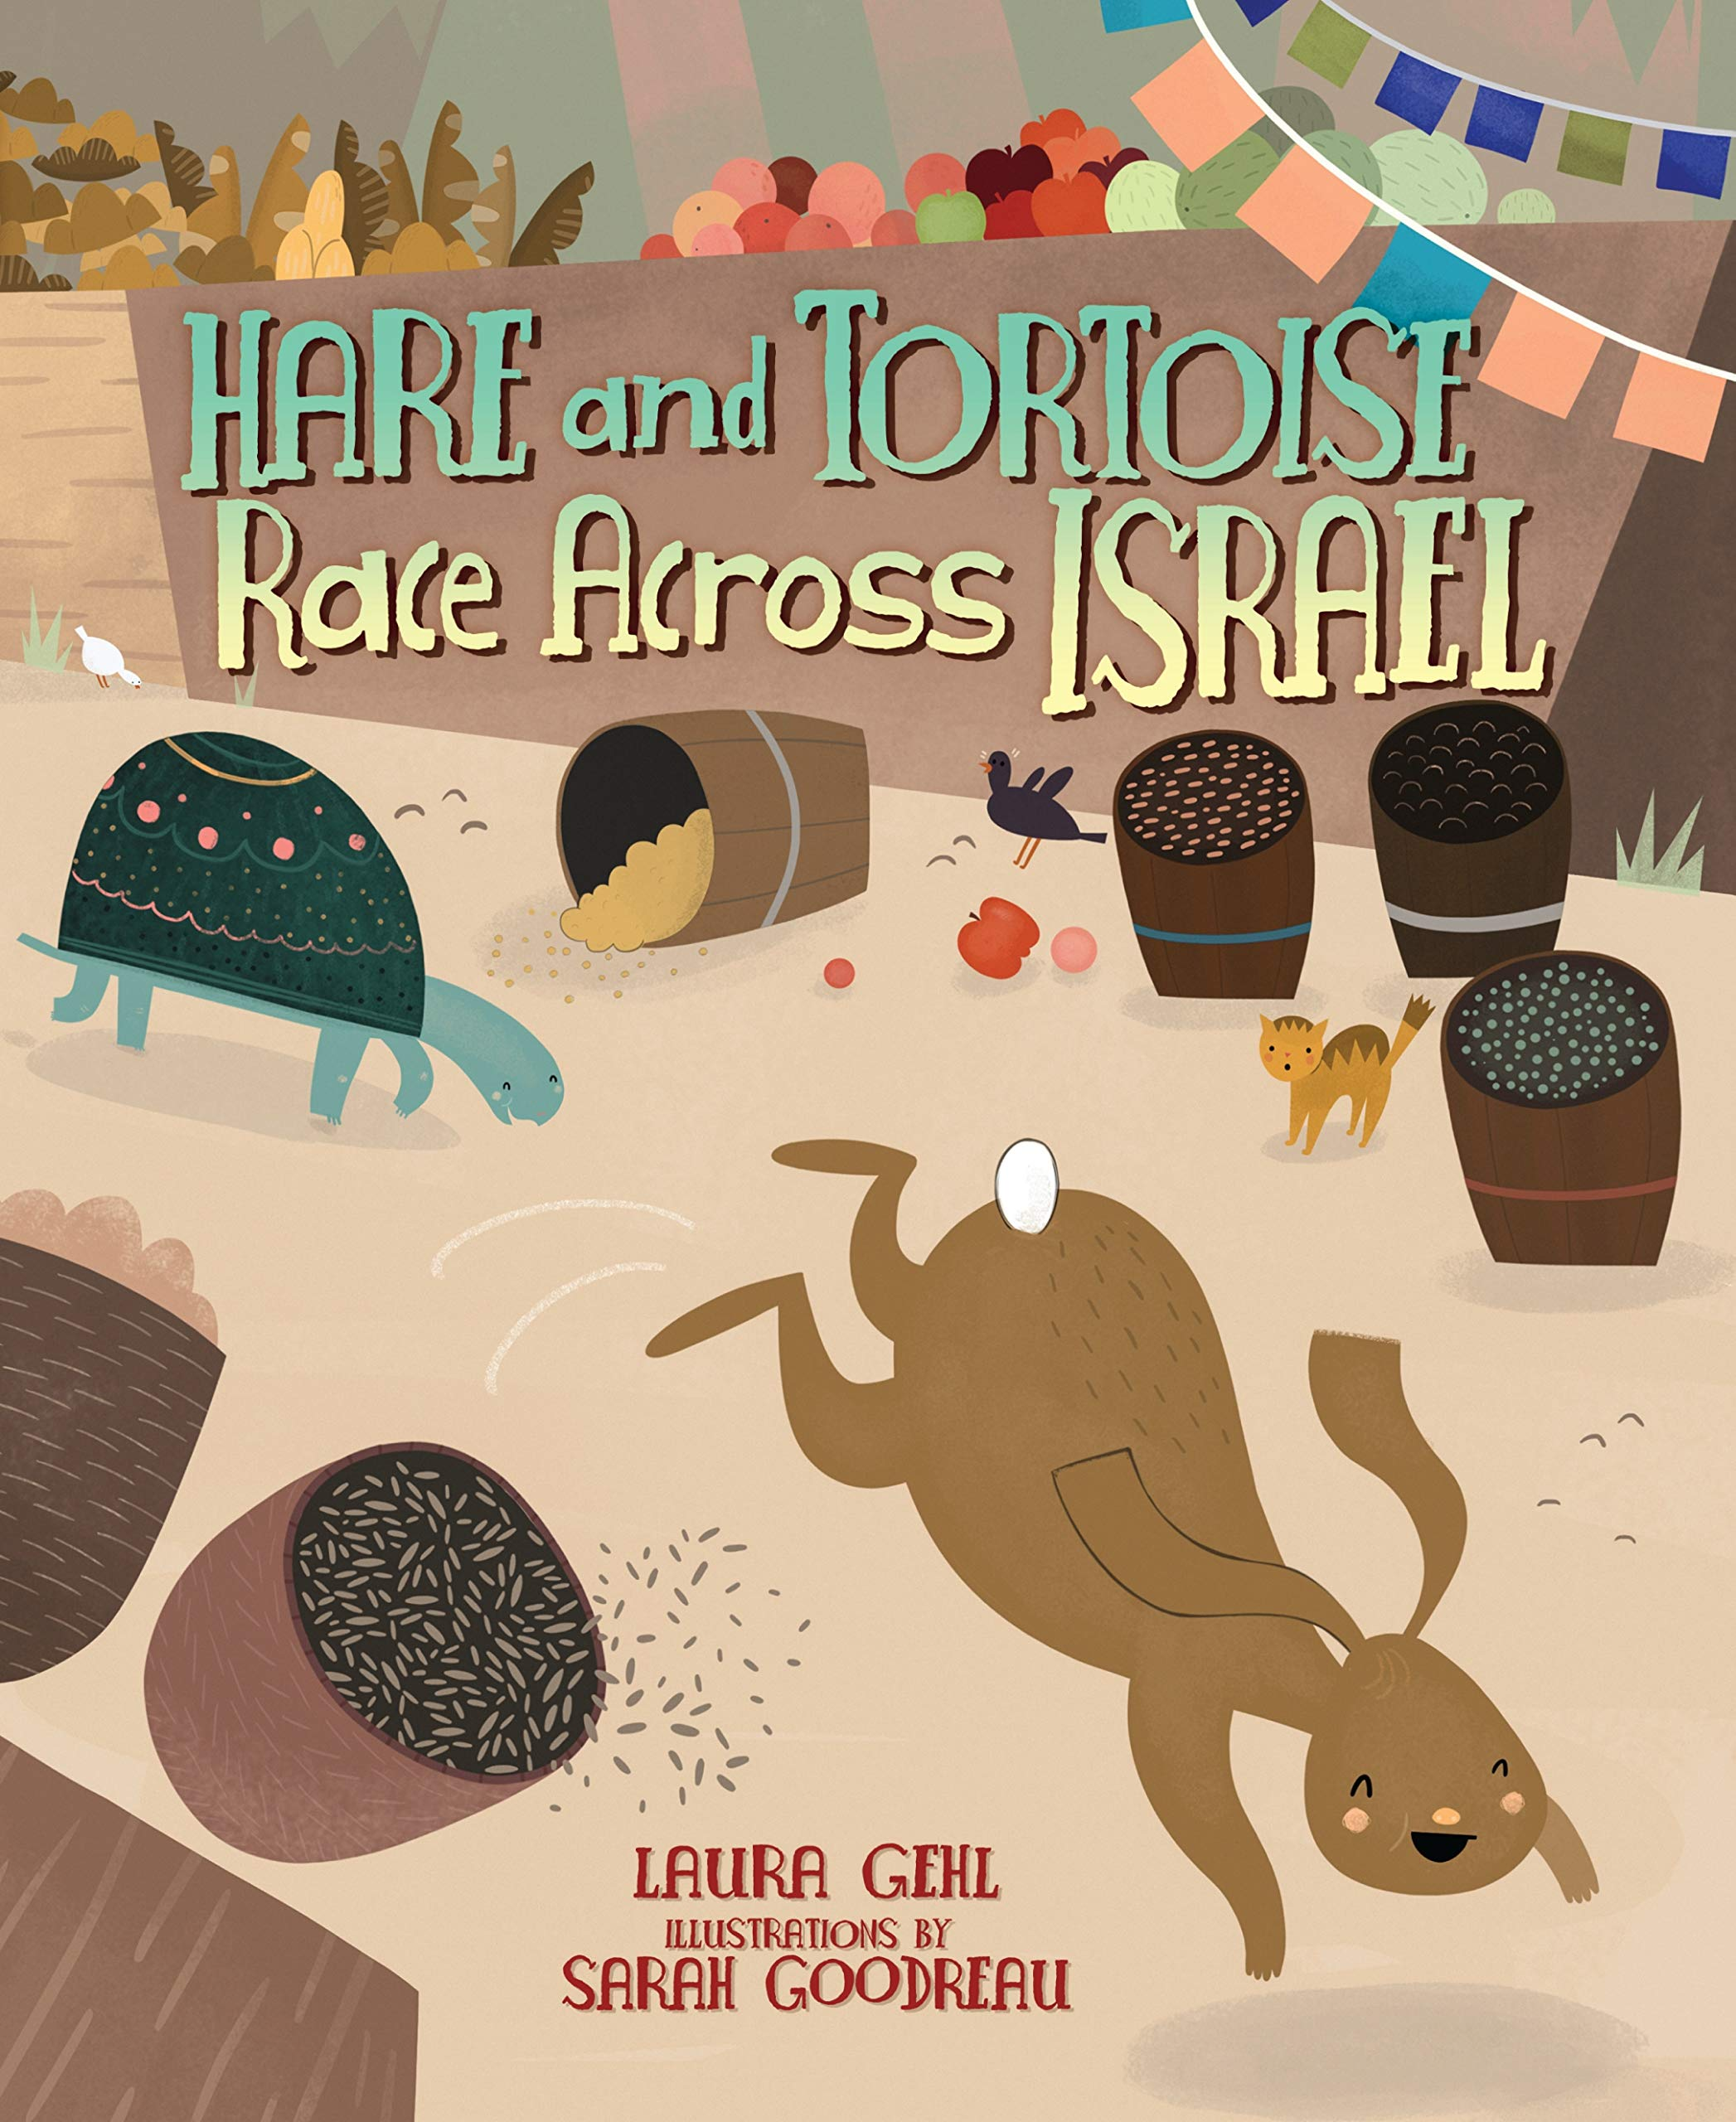 Hare and Tortoise Race Across Israel ebook